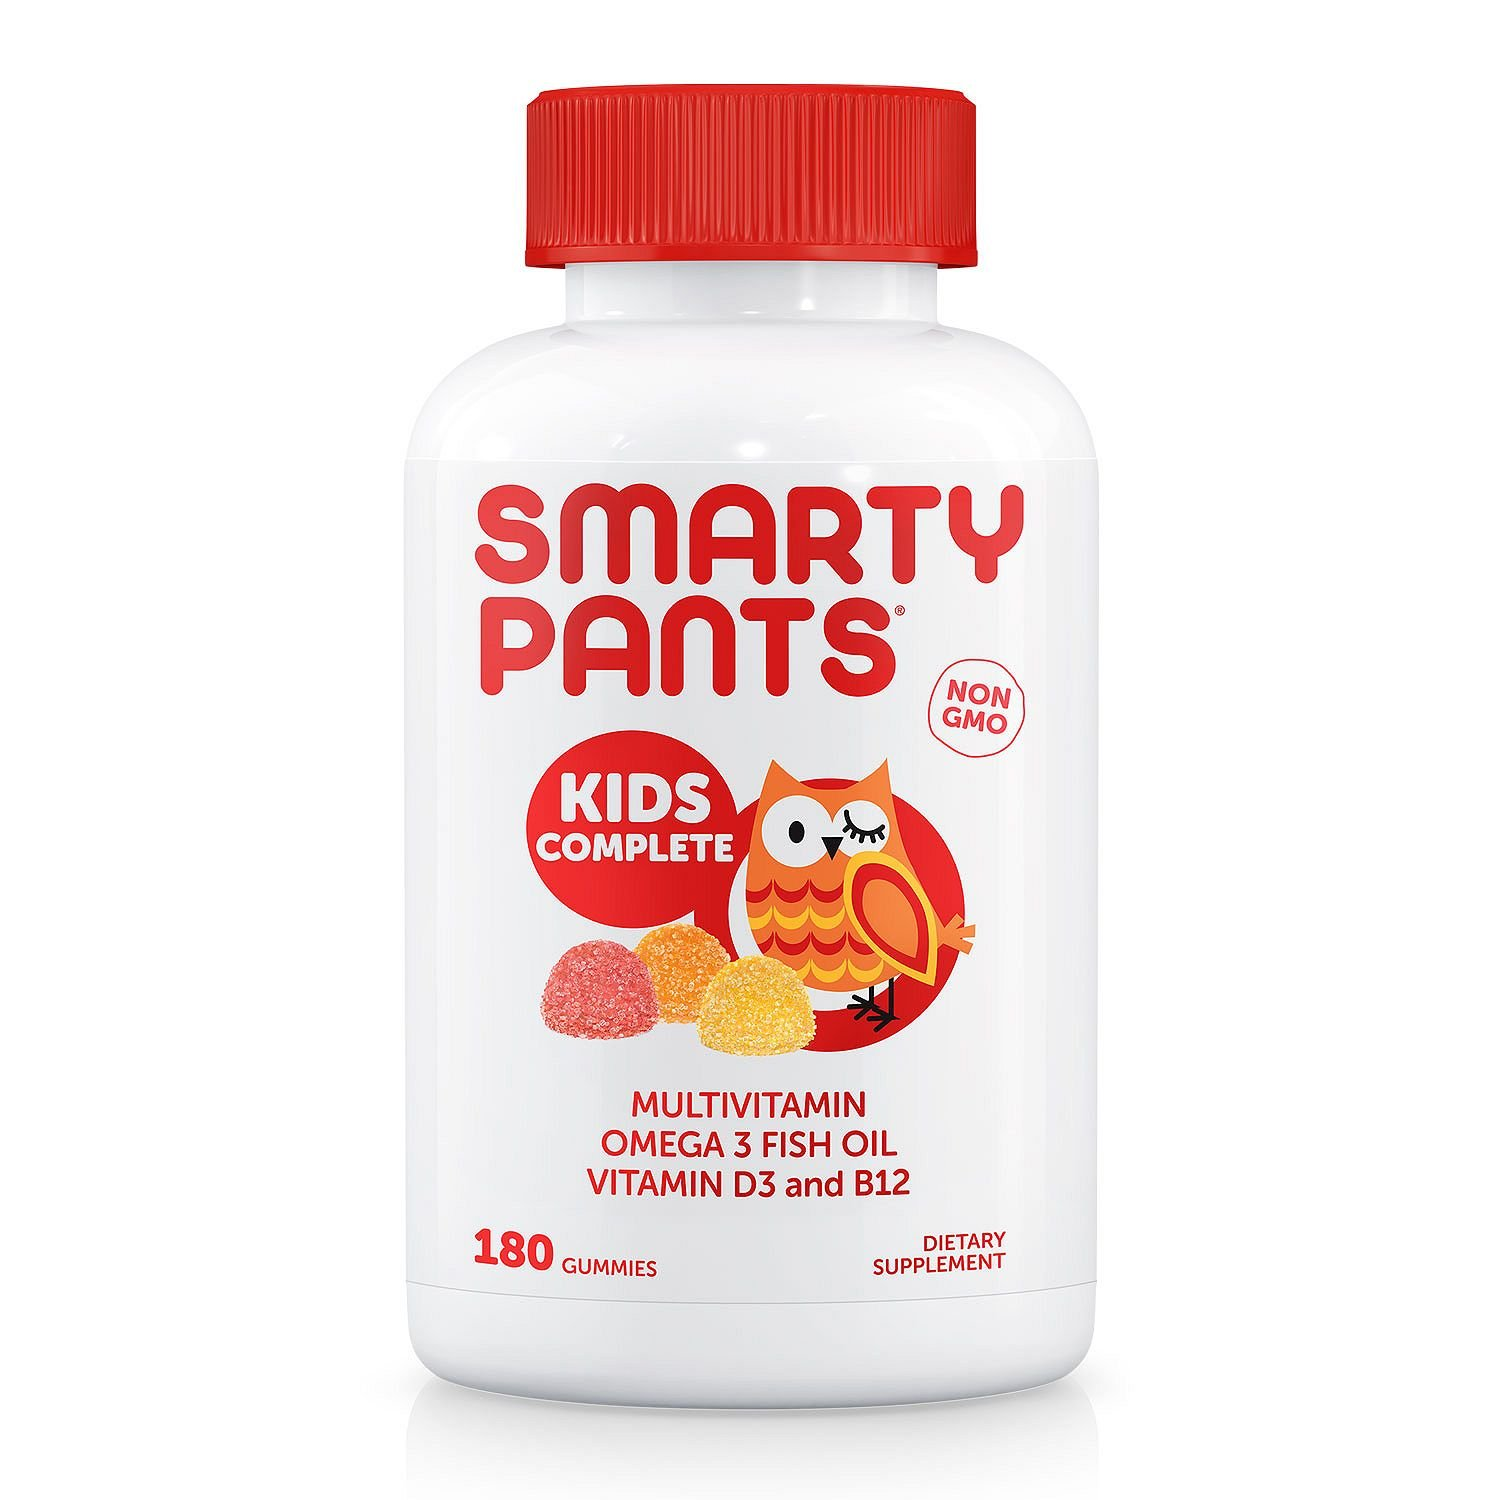 CDM product SmartyPants Kids Complete Daily Gummy Vitamins, Gluten Free, Multivitamin & Omega 3 Fish Oil, 180 Count big image